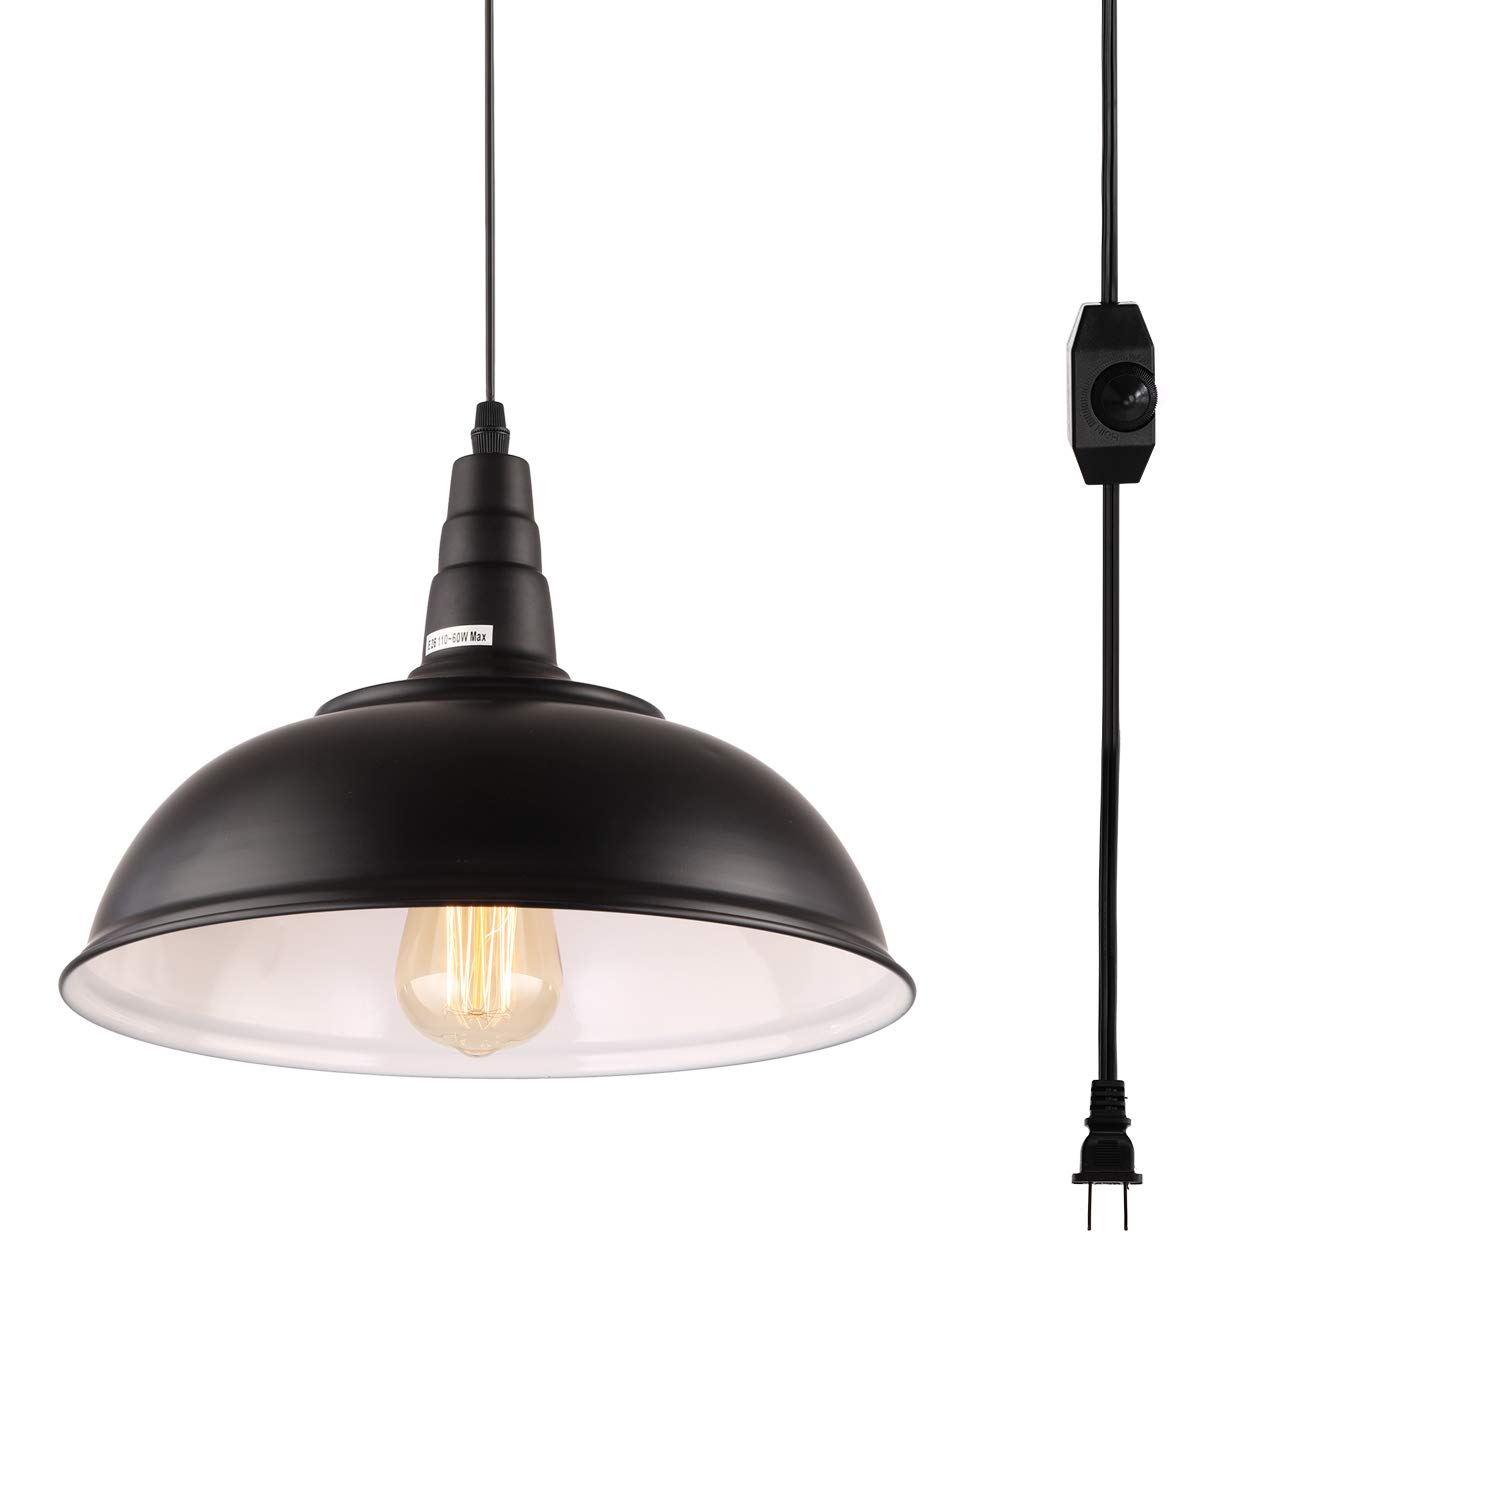 HMVPL Plug in Pendant Lights with 16.4 Ft Hanging Cord and On/Off Dimmer Switch, Upgraded Industrial Metal Swag Ceiling Lamp for Dining Room, Bedroom, Barn, Kitchen Island Table, Sink, Hallway